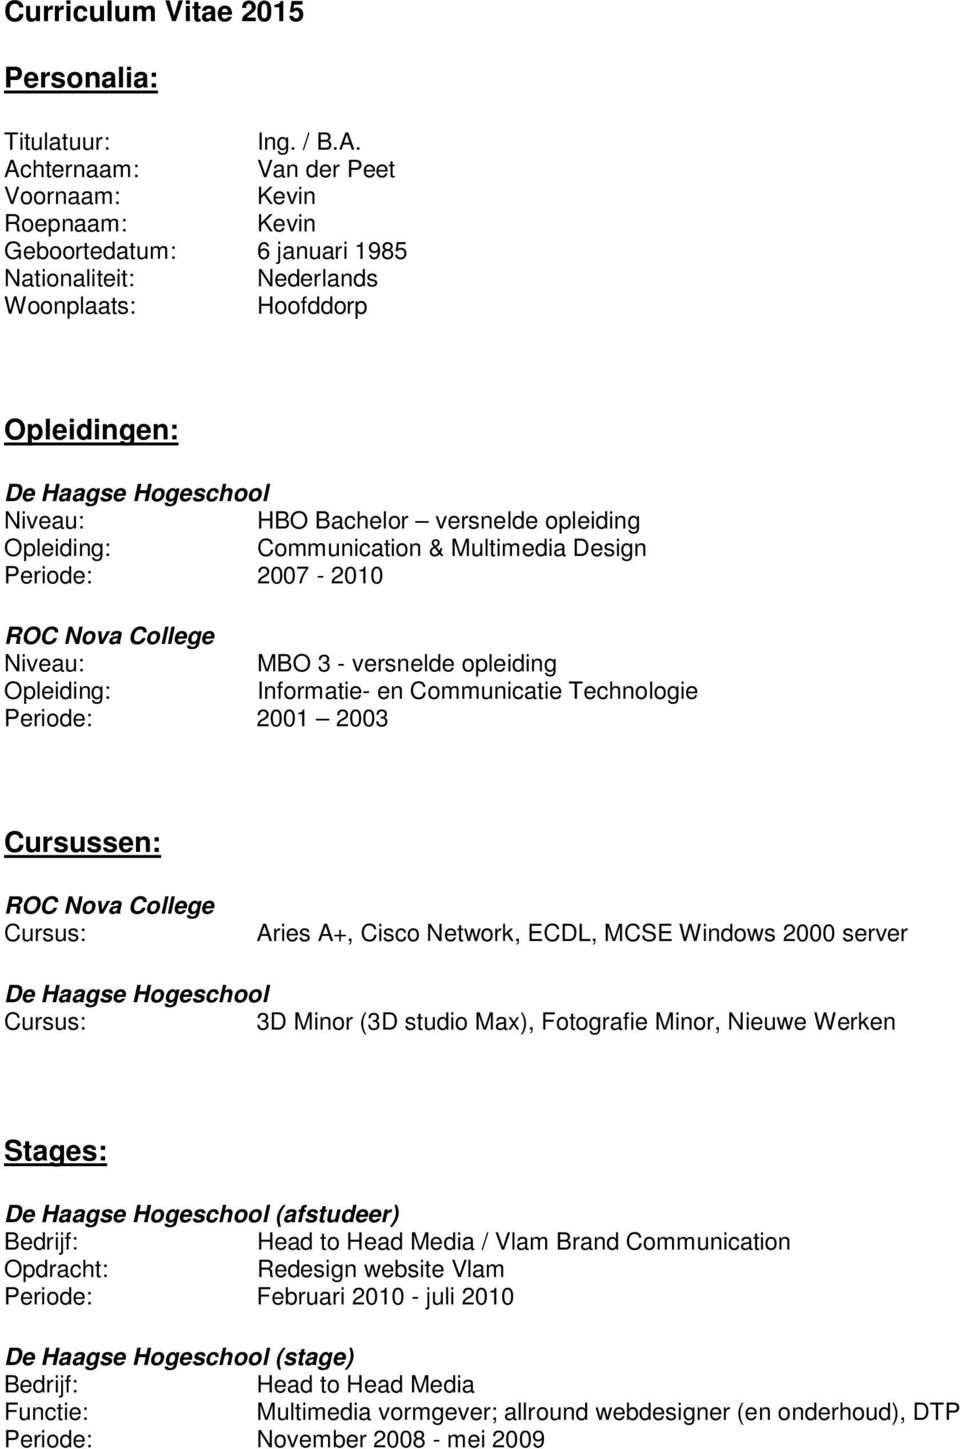 opleiding Opleiding: Communication & Multimedia Design Periode: 2007-2010 ROC Nova College Niveau: MBO 3 - versnelde opleiding Opleiding: Informatie- en Communicatie Technologie Periode: 2001 2003